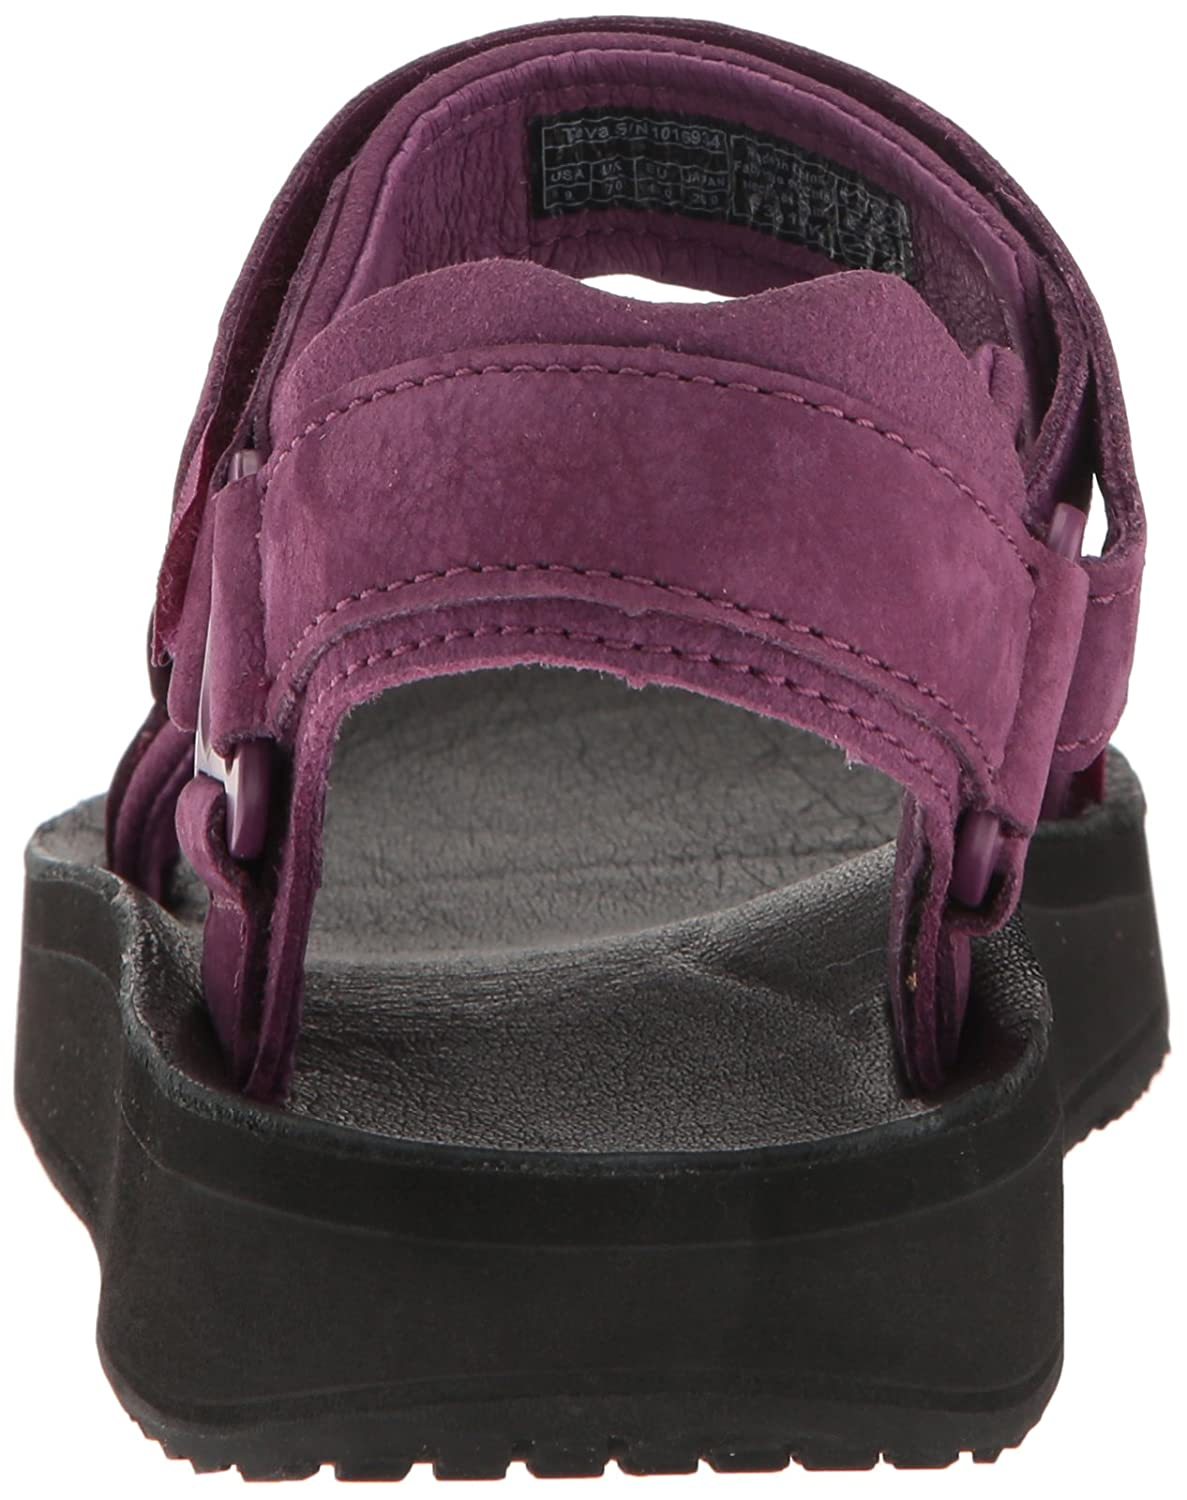 Teva Women's W Original Universal Premier-Leather Sandal B01IPRI2N6 10 M US|Dark Purple